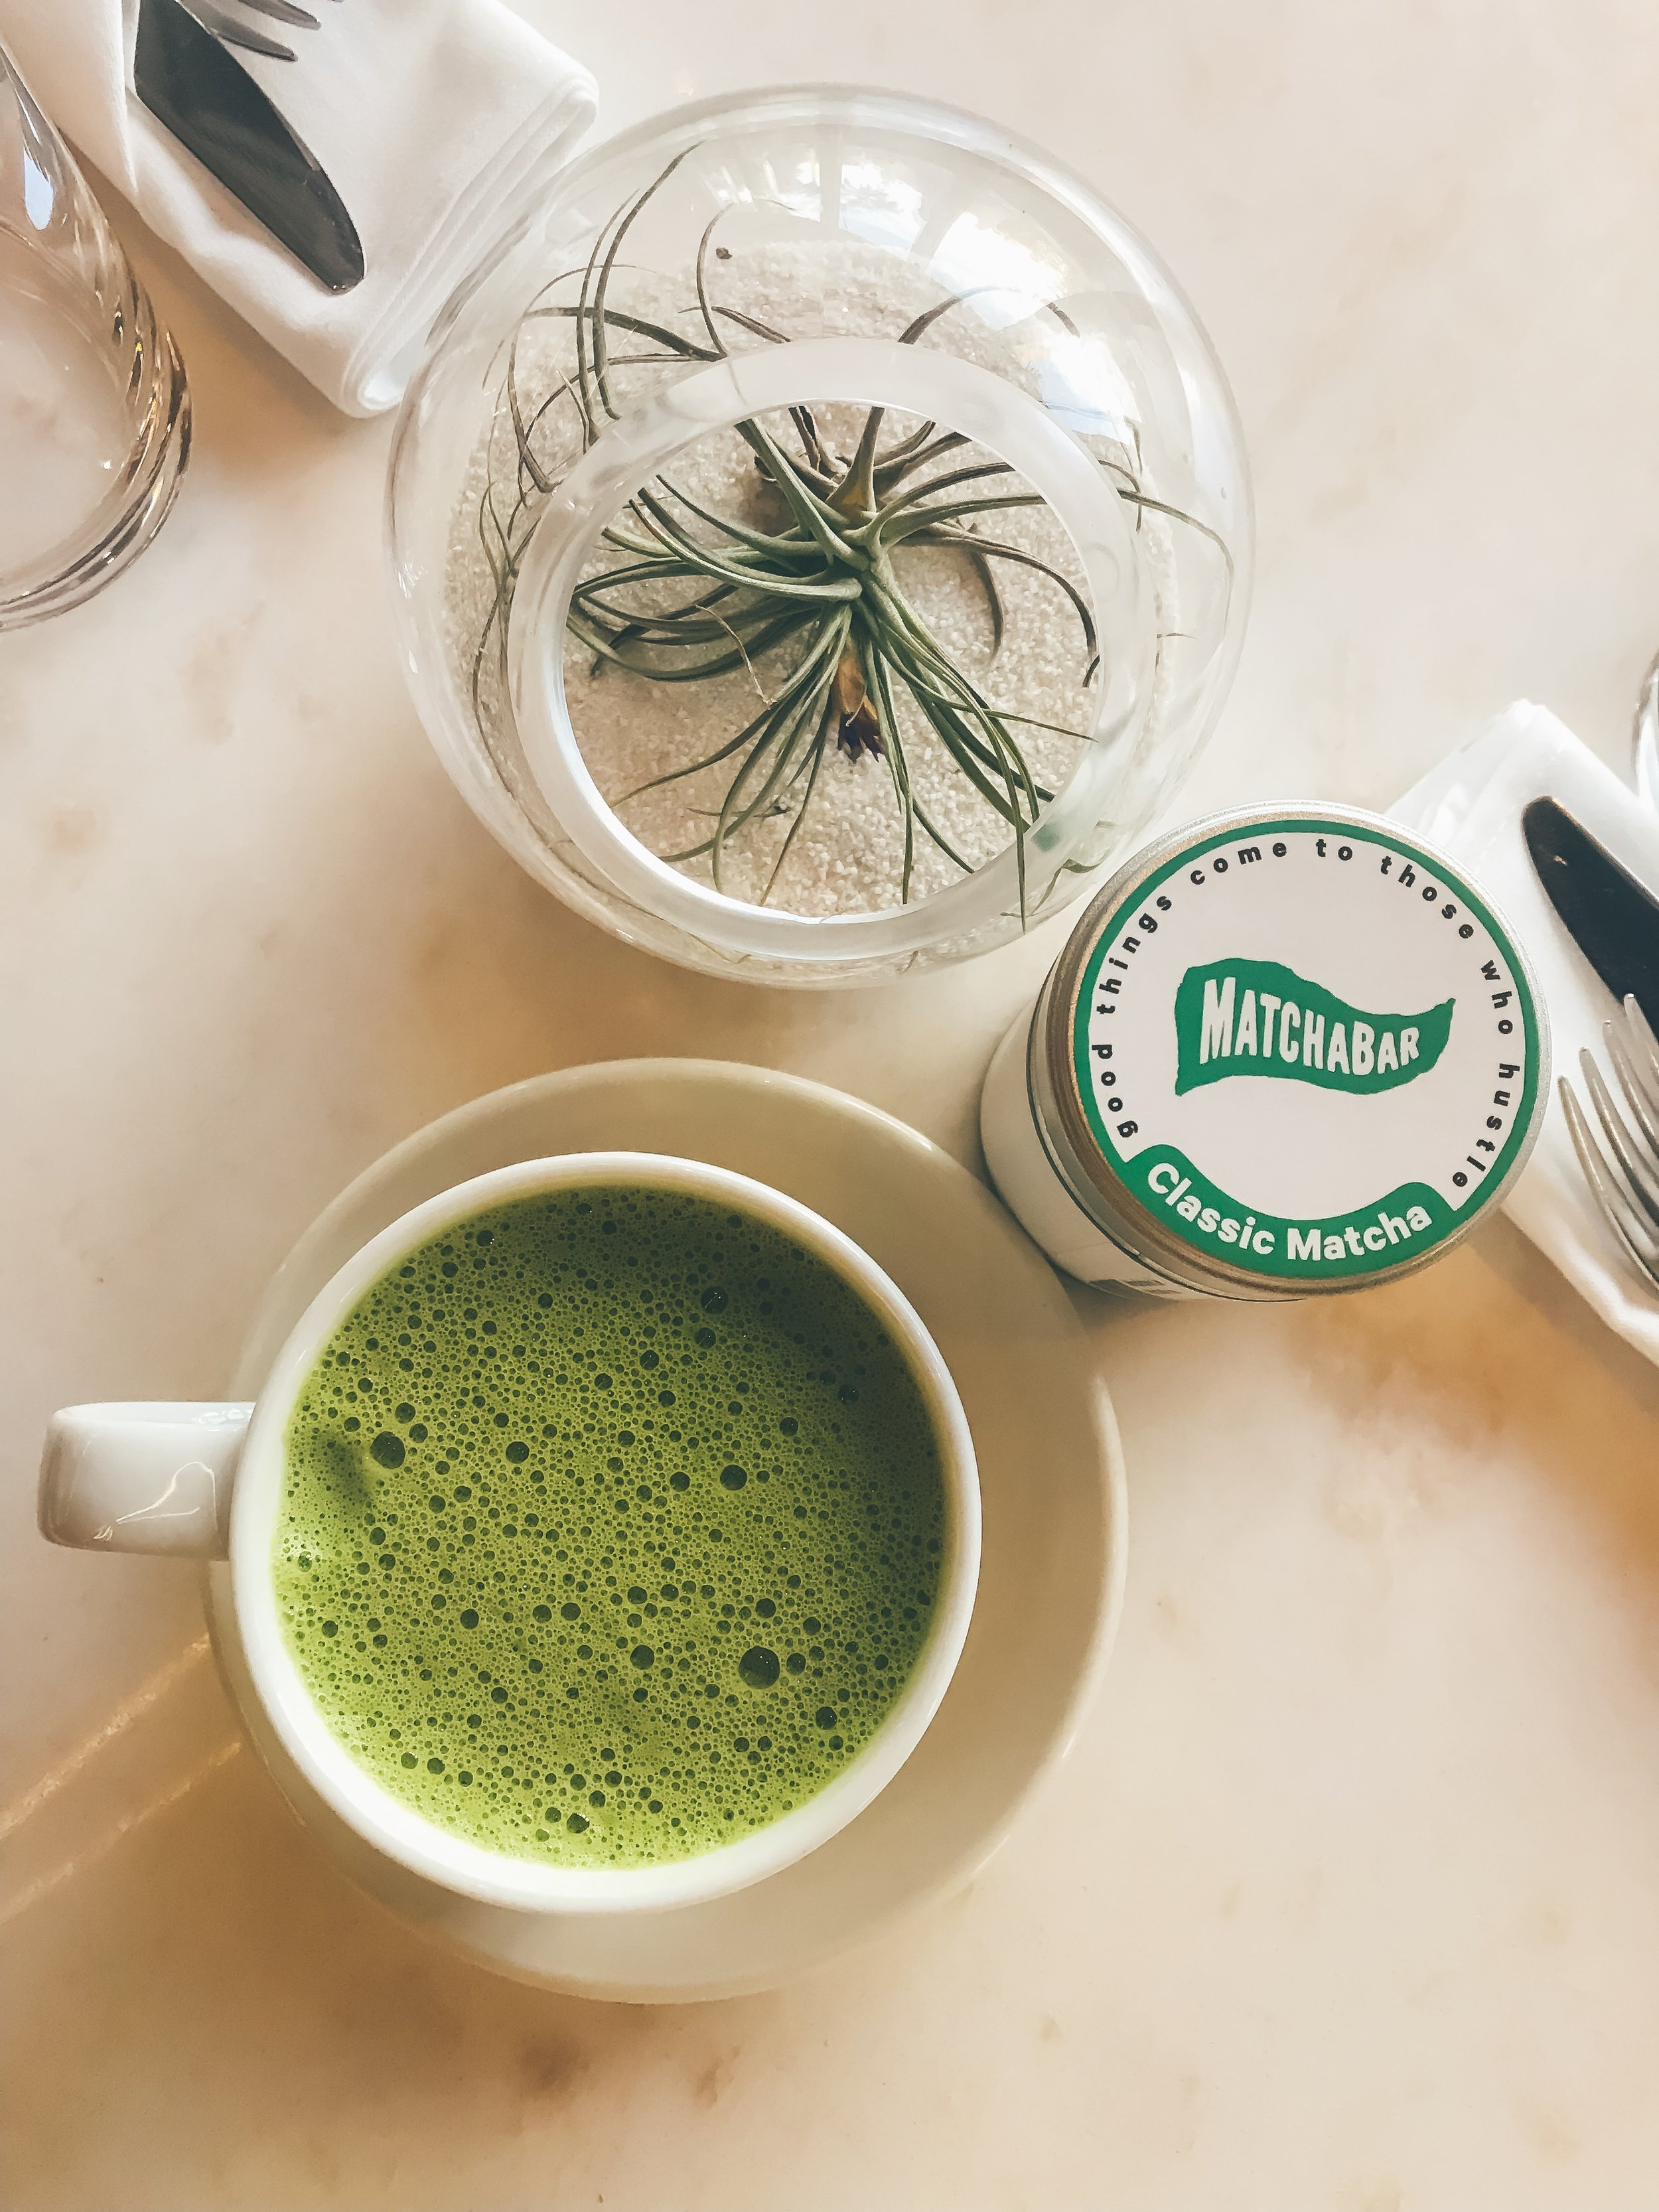 My Go-To Mindful Matcha - You can bring a tin of matcha with you easily in your carry-on luggage or simply in your everyday handbag. My favorite travel matcha is from my friends at Matcha Bar.Their matcha is light, airy, very high quality and always brings me right back to my center in the midst of a lot of travel and movement.I also love to have matcha on hand when I am flying, as all you need to do is ask for hot water and whisk in your matcha for an in-flight mindful matcha moment.Use code MATCHAAG for 25% off their newest matcha blend here.